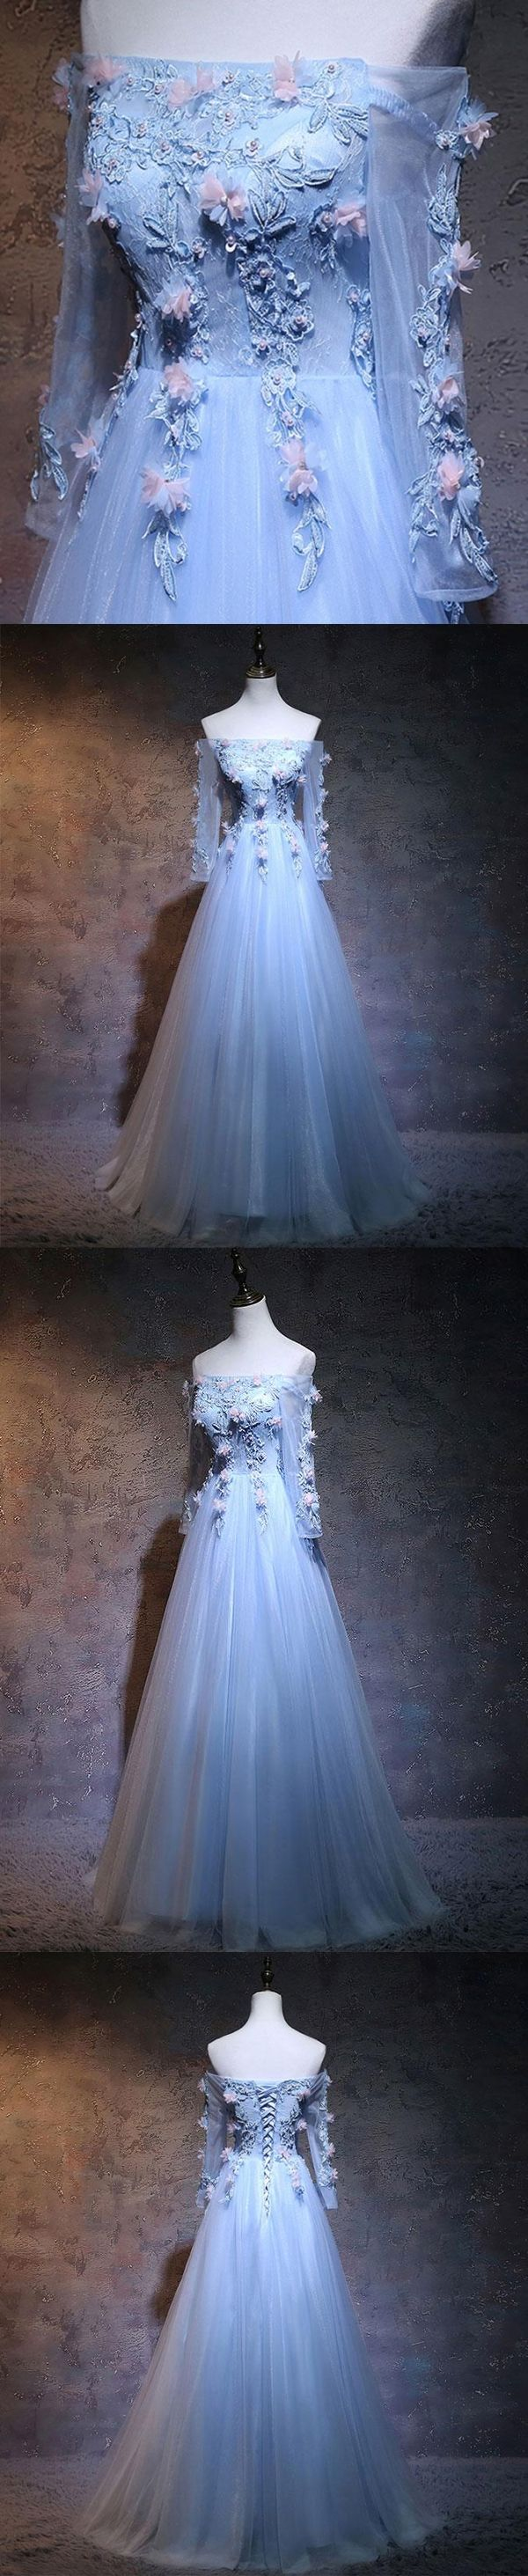 Beautiful prom dresses offtheshoulder long sleeve lace prom dress